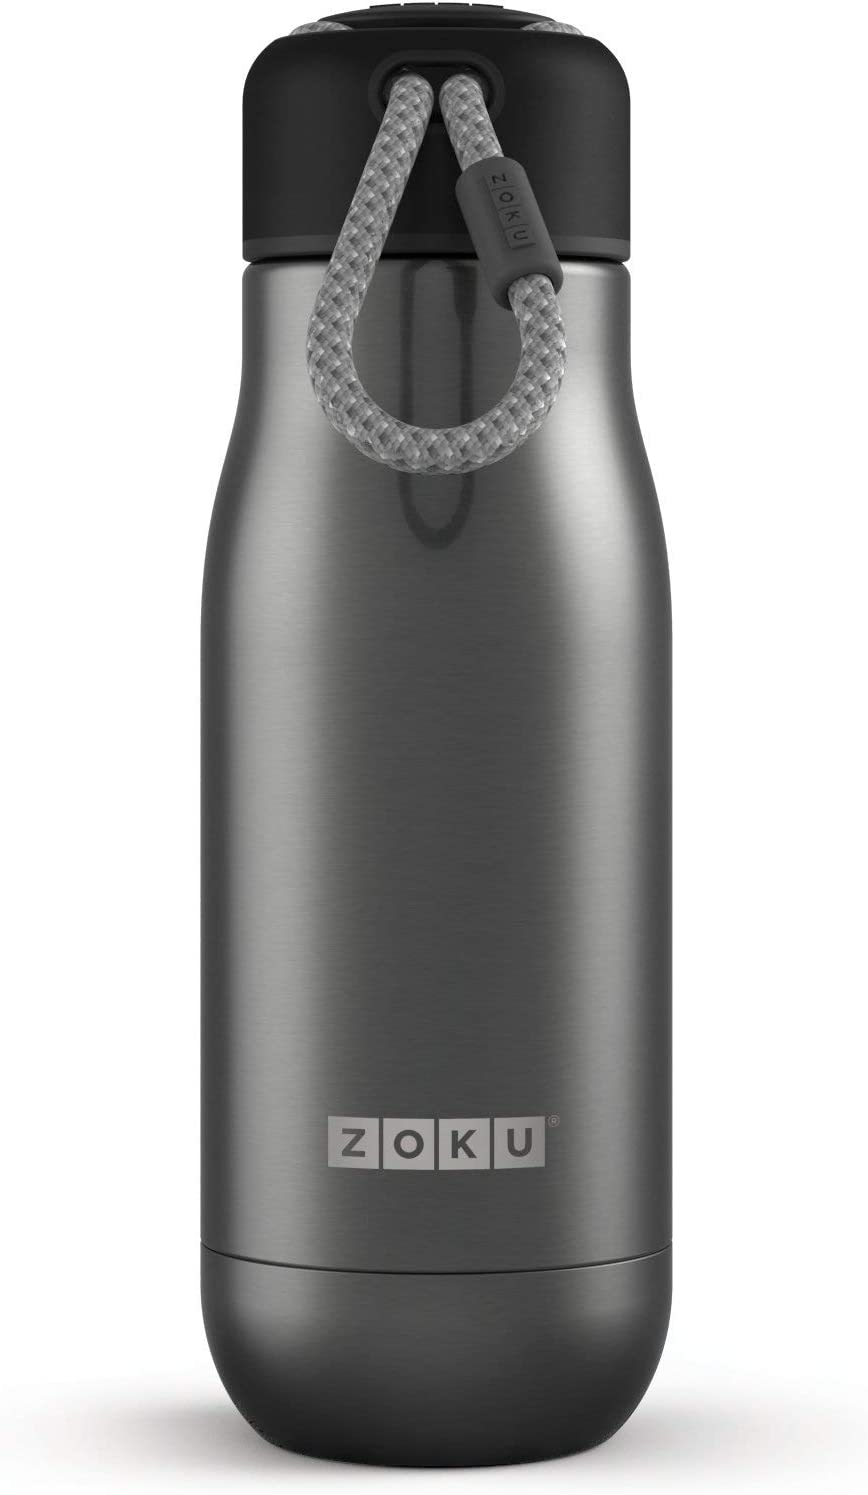 Zoku Stainless Steel Water Bottle 12-Ounce; Gunmetal; Leak-Proof & Spill Proof; Durable Paracord Lanyard Cap, Double-Walled Vacuum Insulated; Large 1-1/2-Inch Diameter Mouth Opening